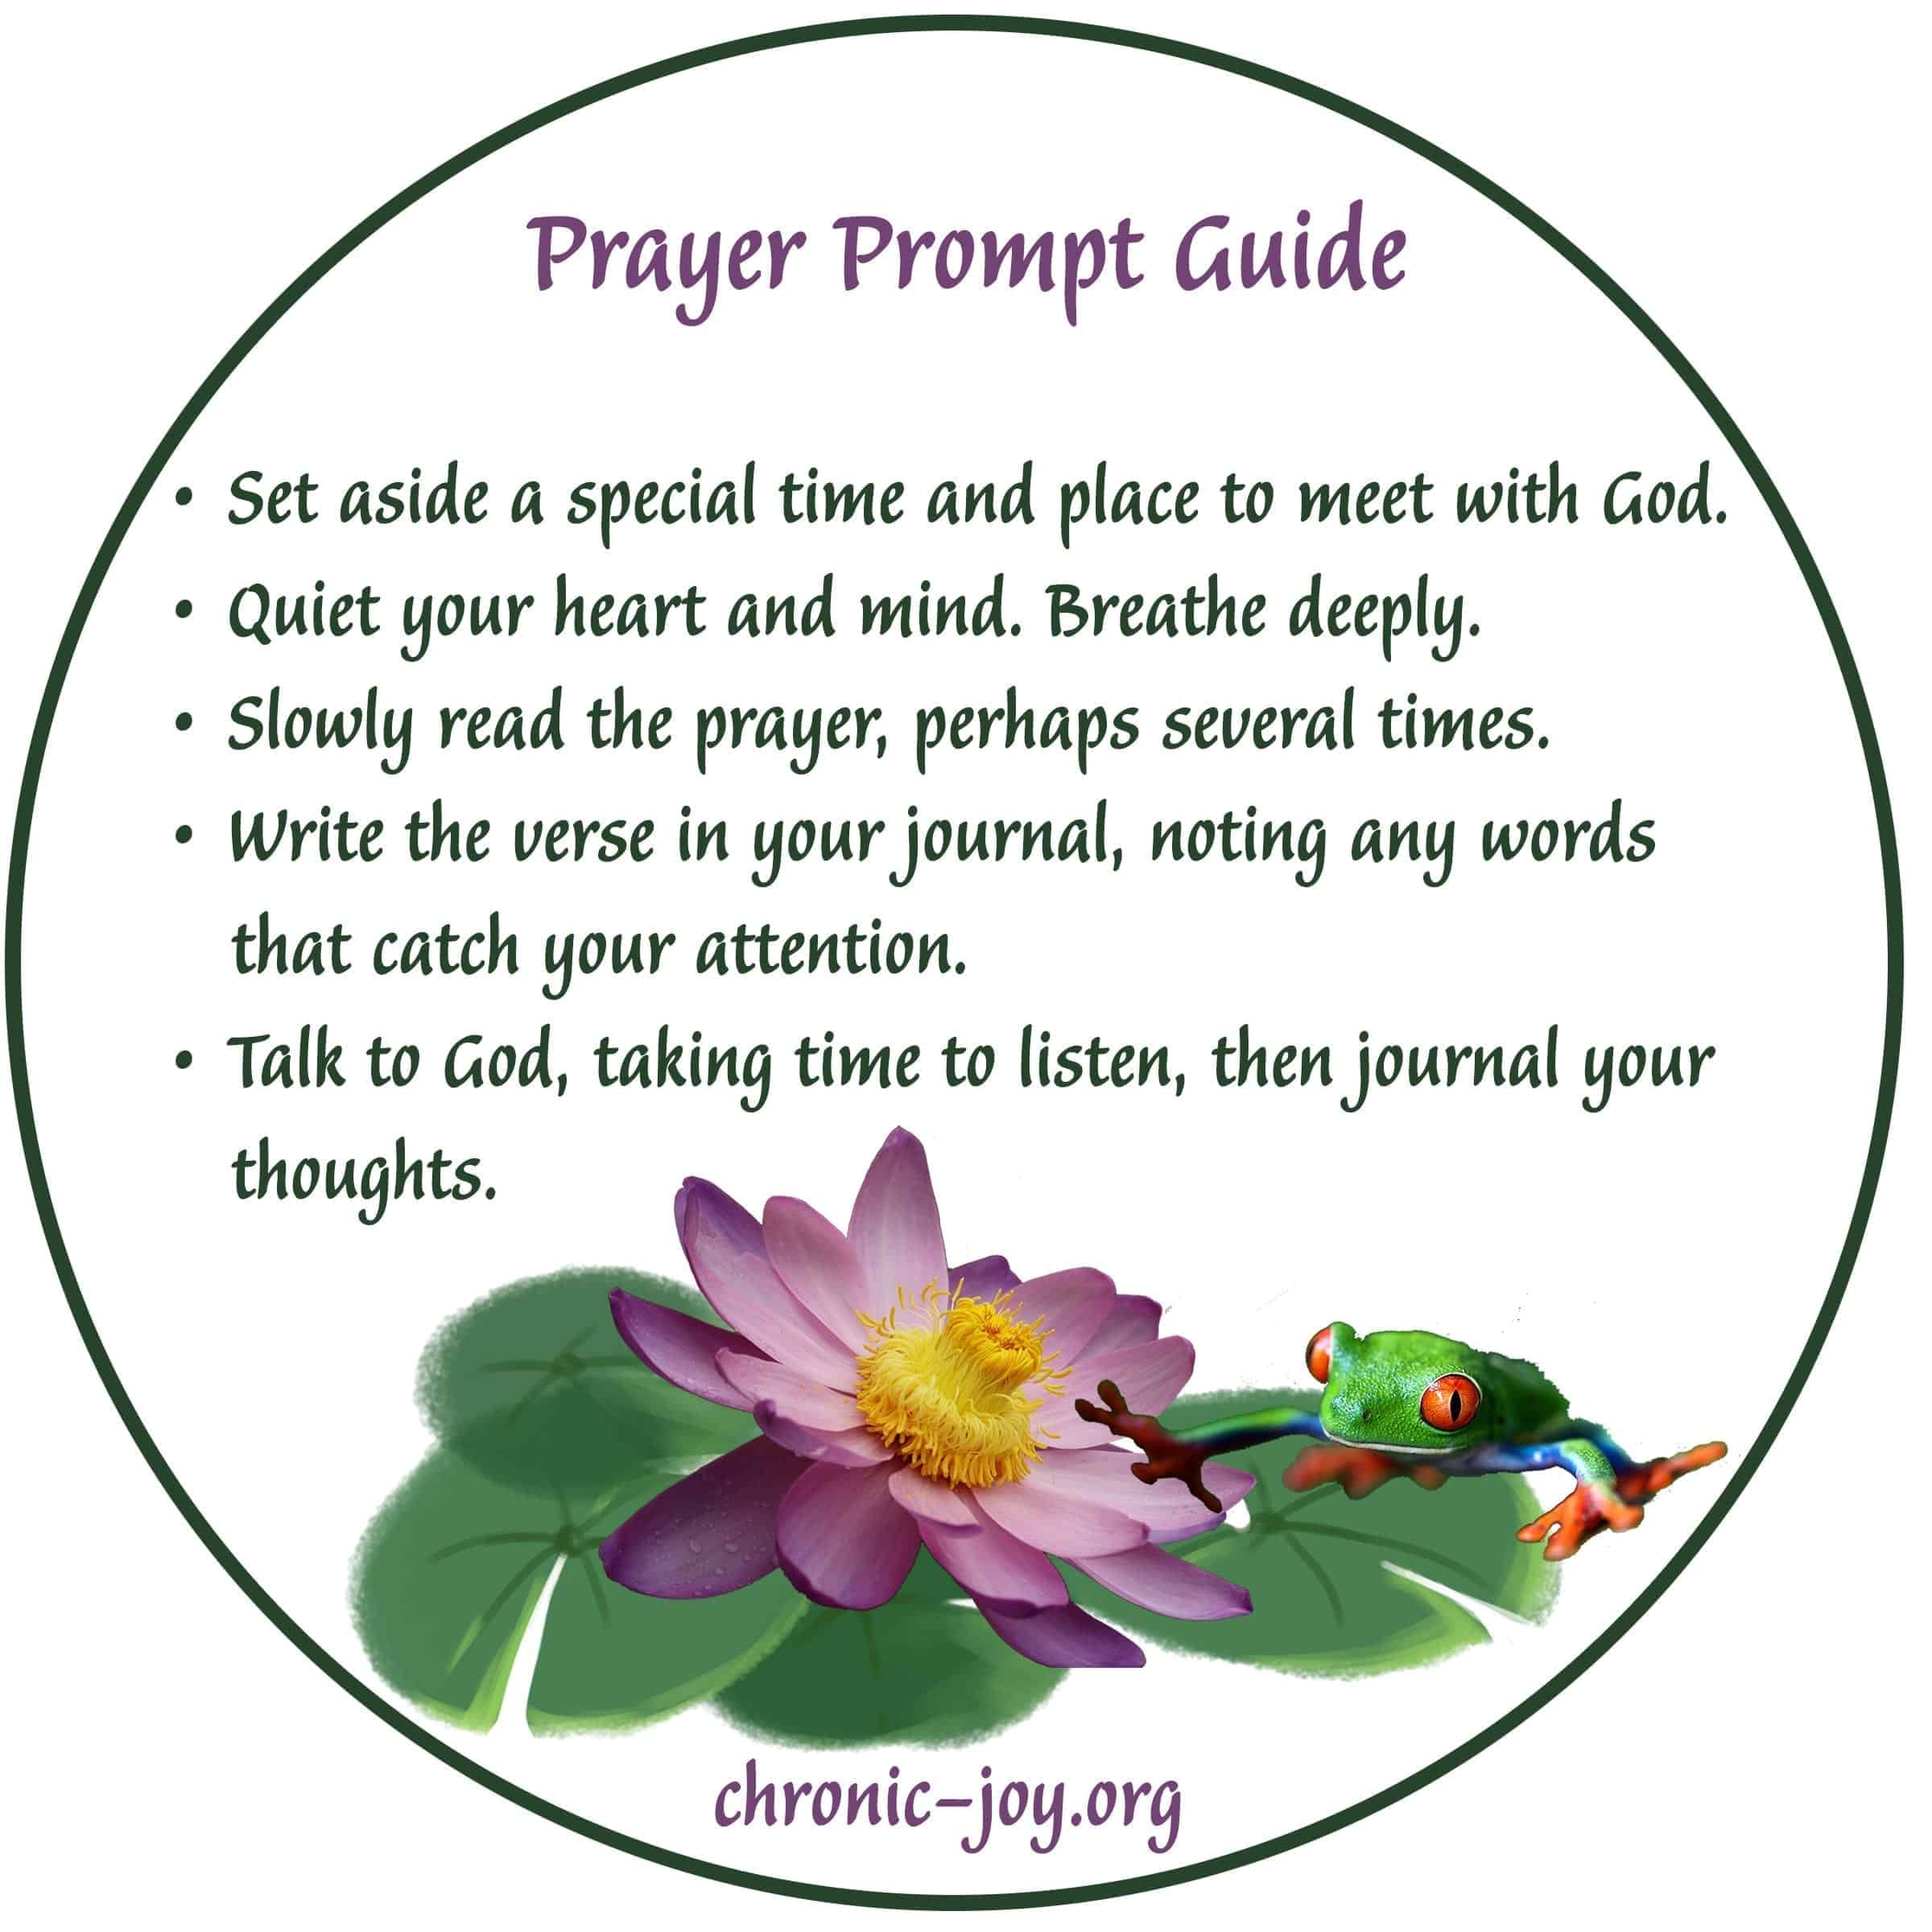 Prayer Prompt Guide